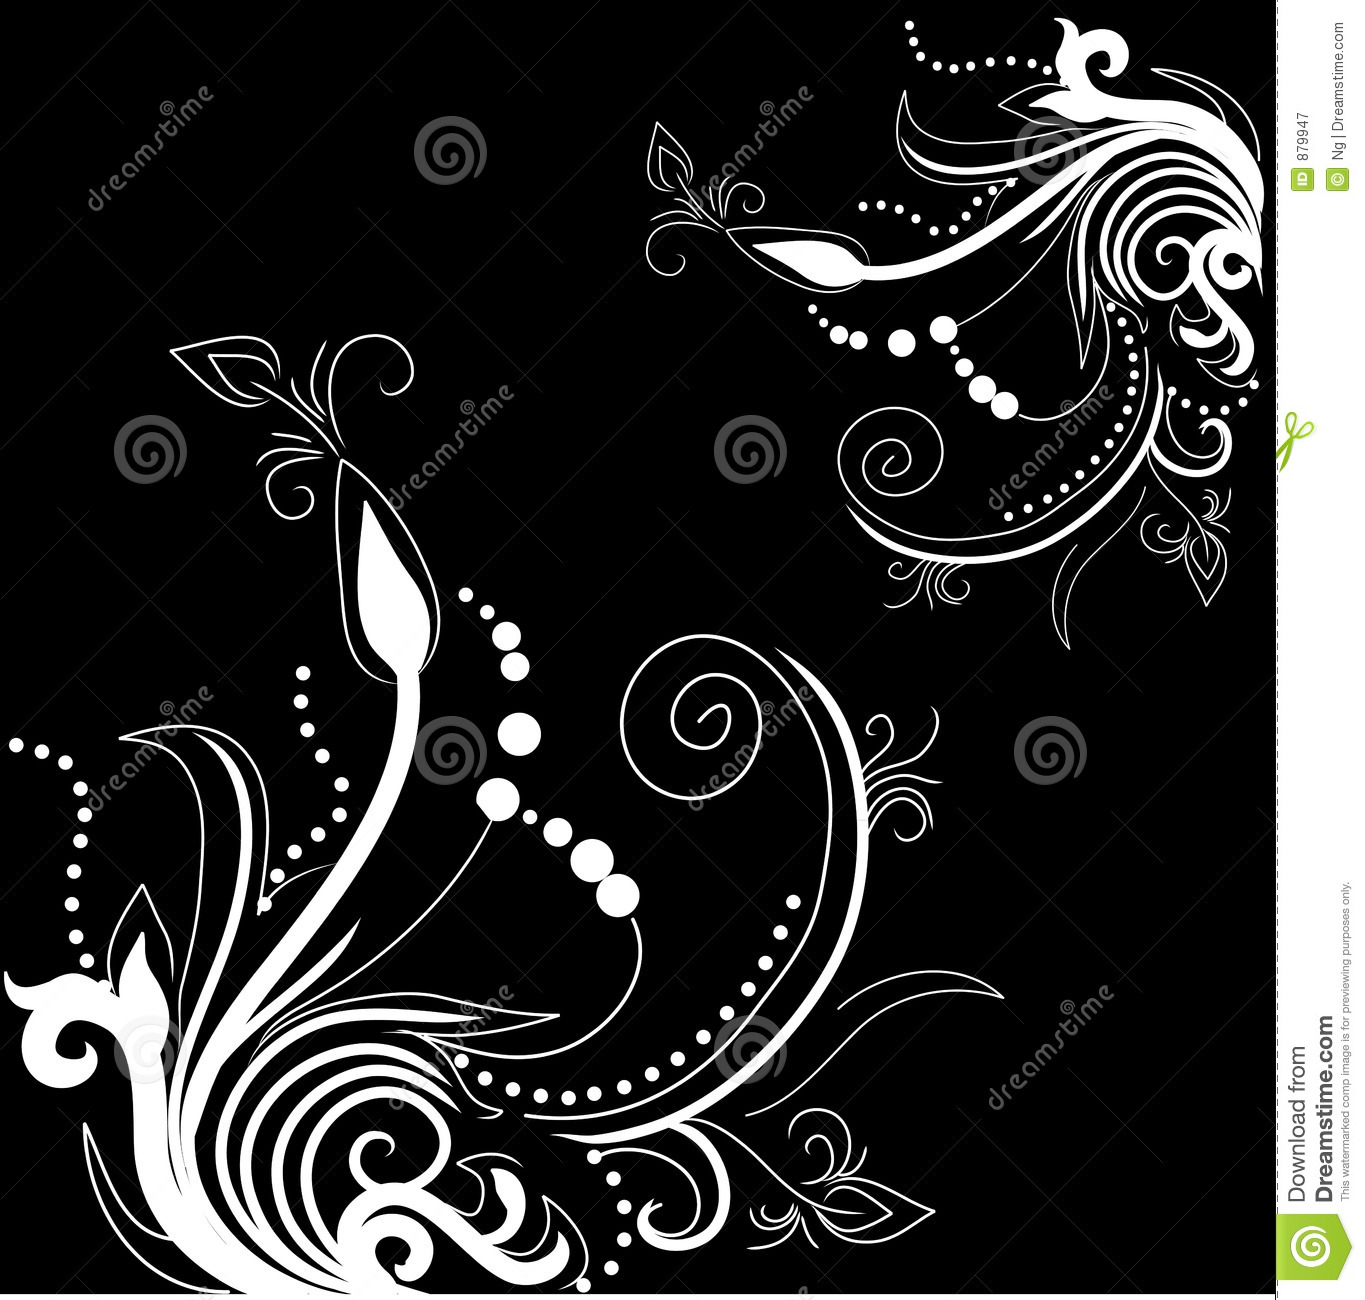 pretty background with floral designs stock illustration